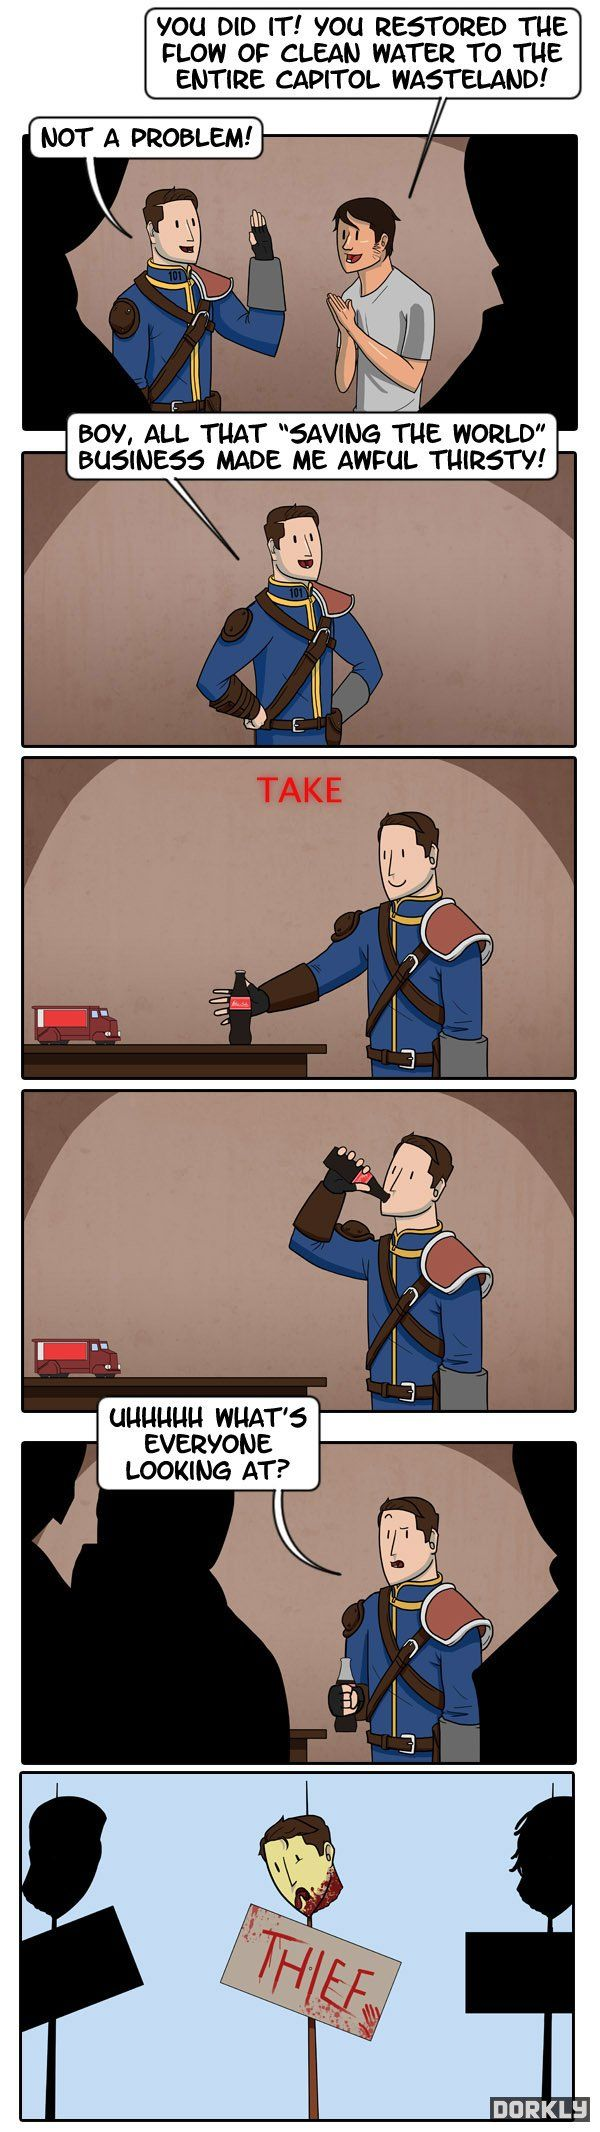 Story of my (virtual) life. I just saved your freaking city and you still want me to pay for drinks?!